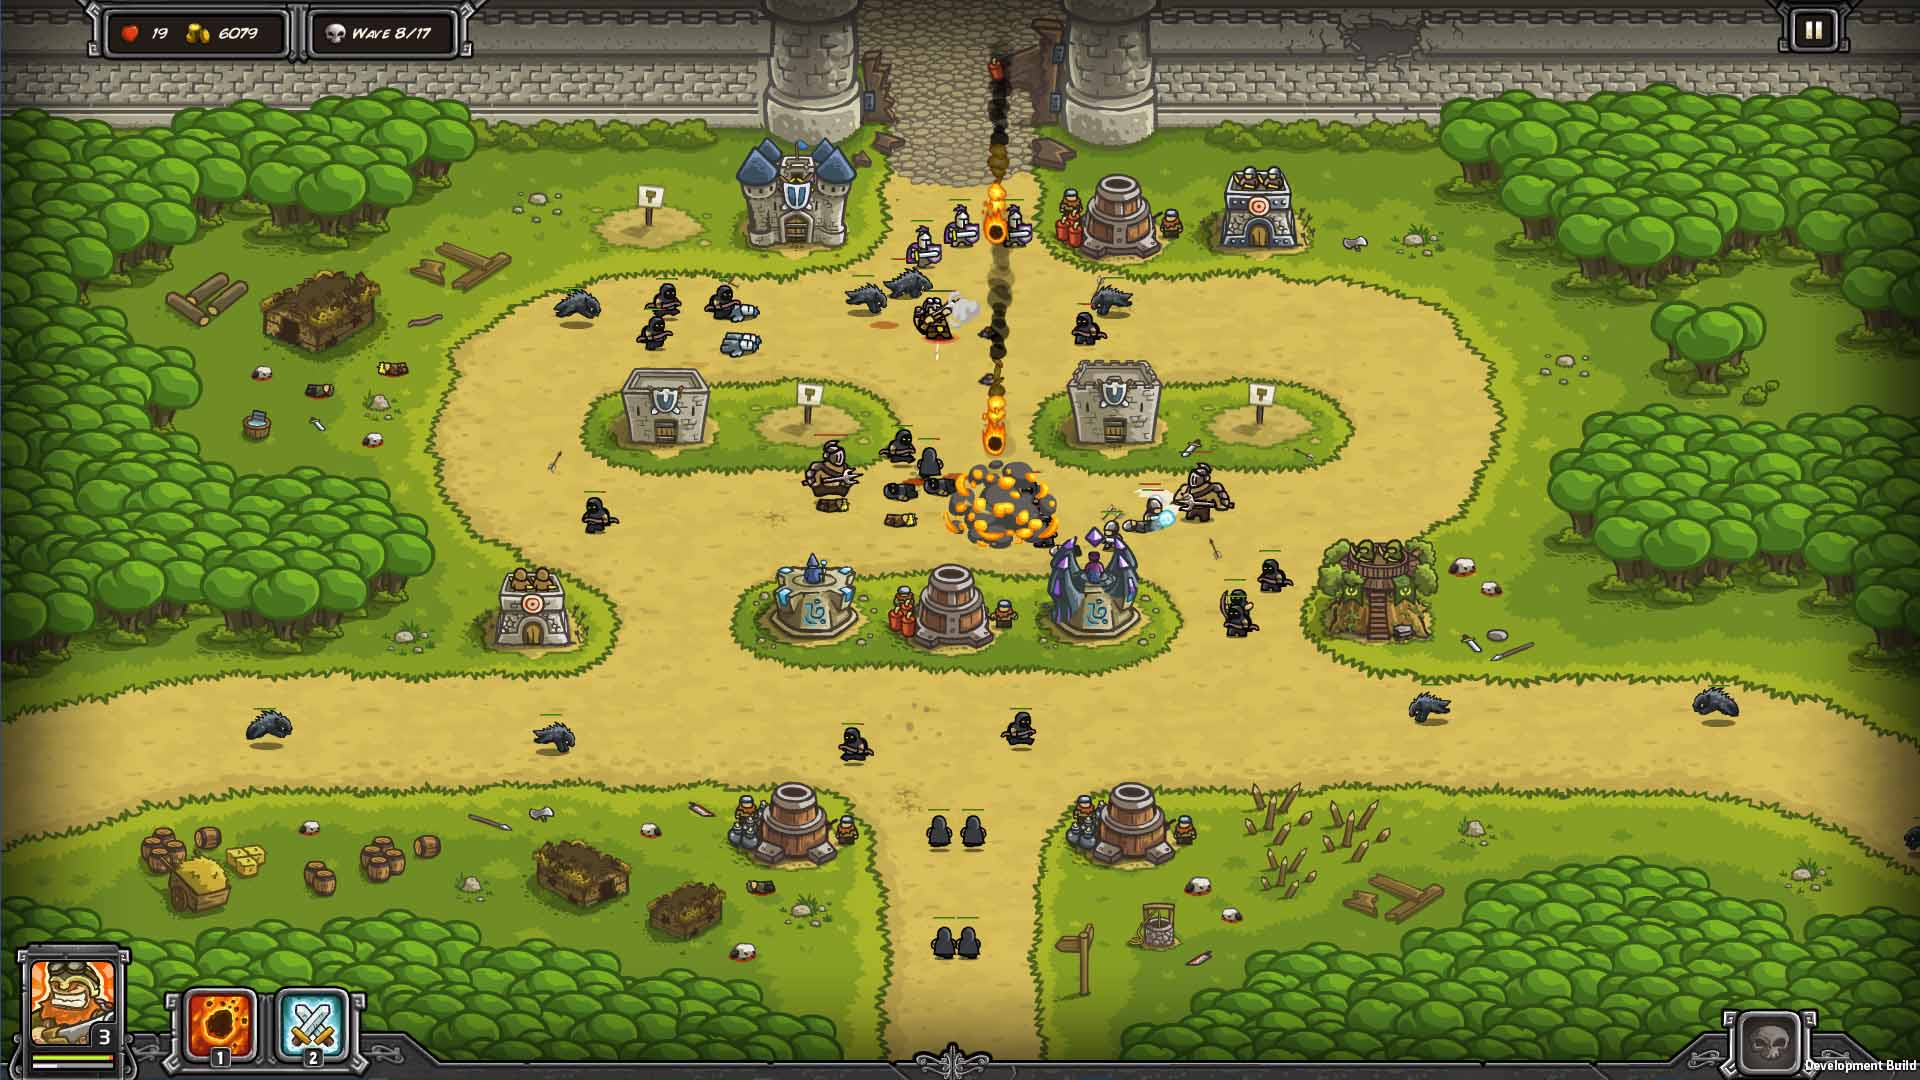 Kingdom Rush (Steam Key, GLOBAL)